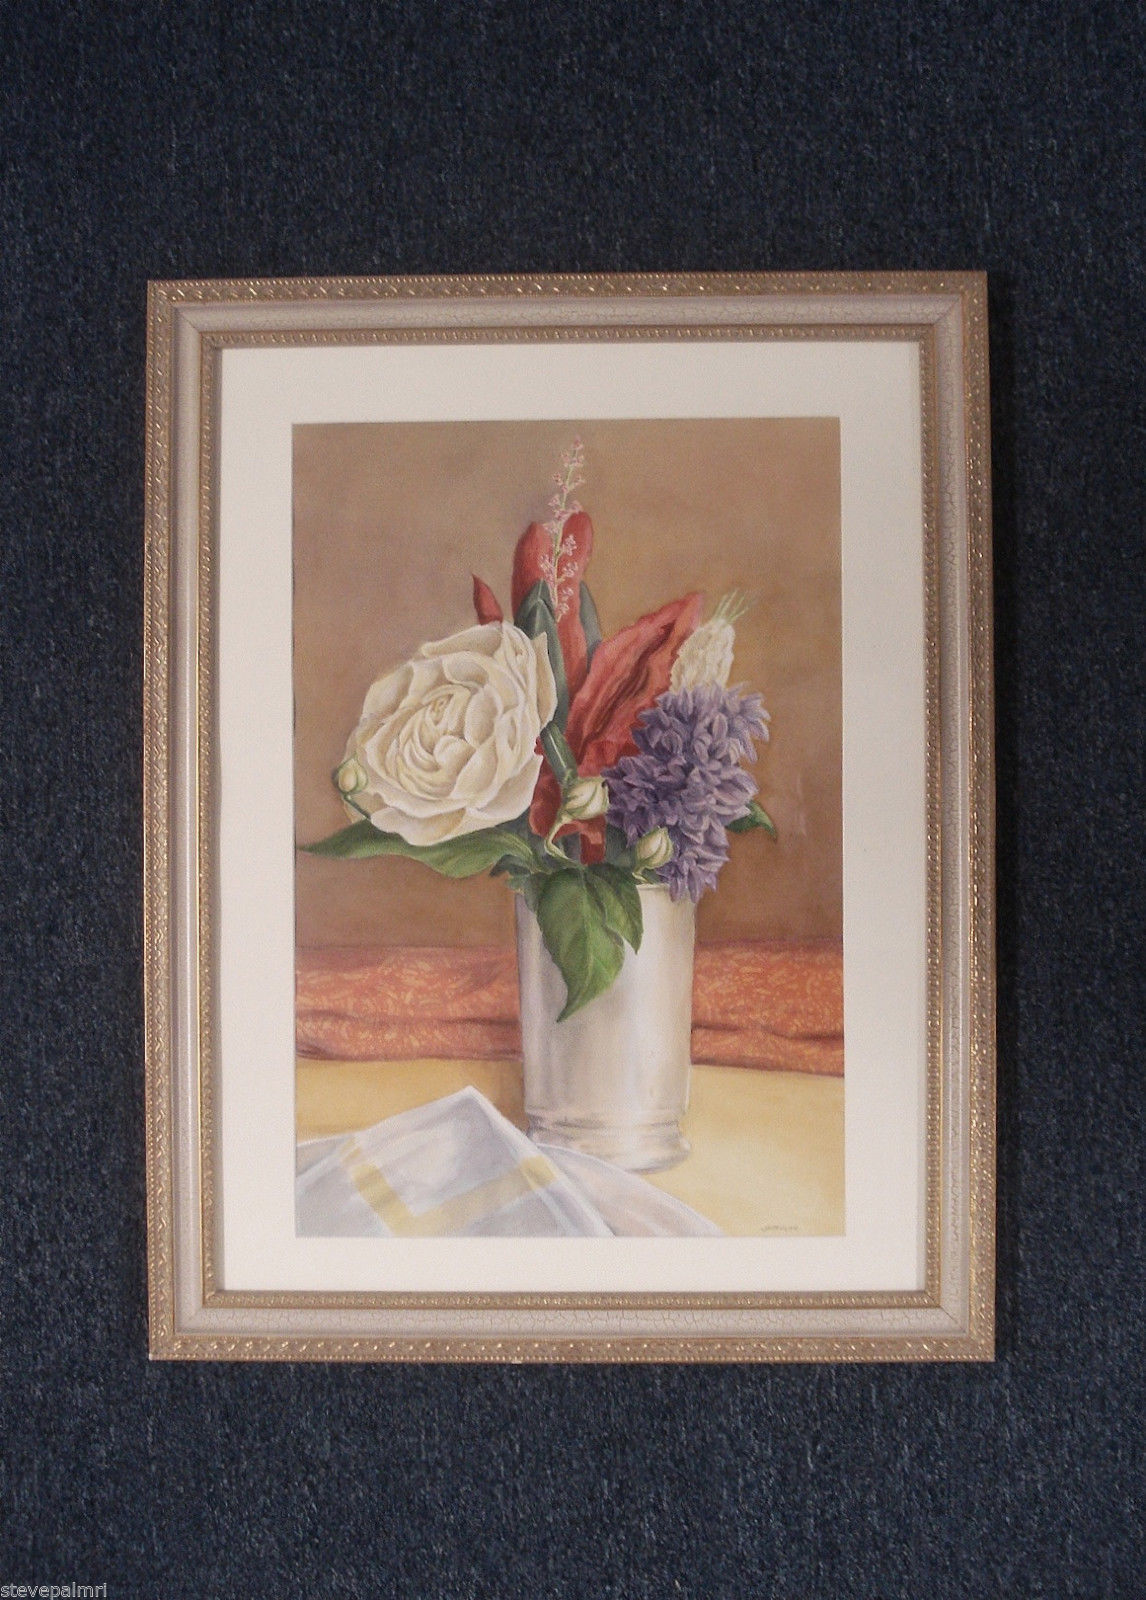 Floral Watercolor Painting Signed J A Taylor Art Home Decor 02001